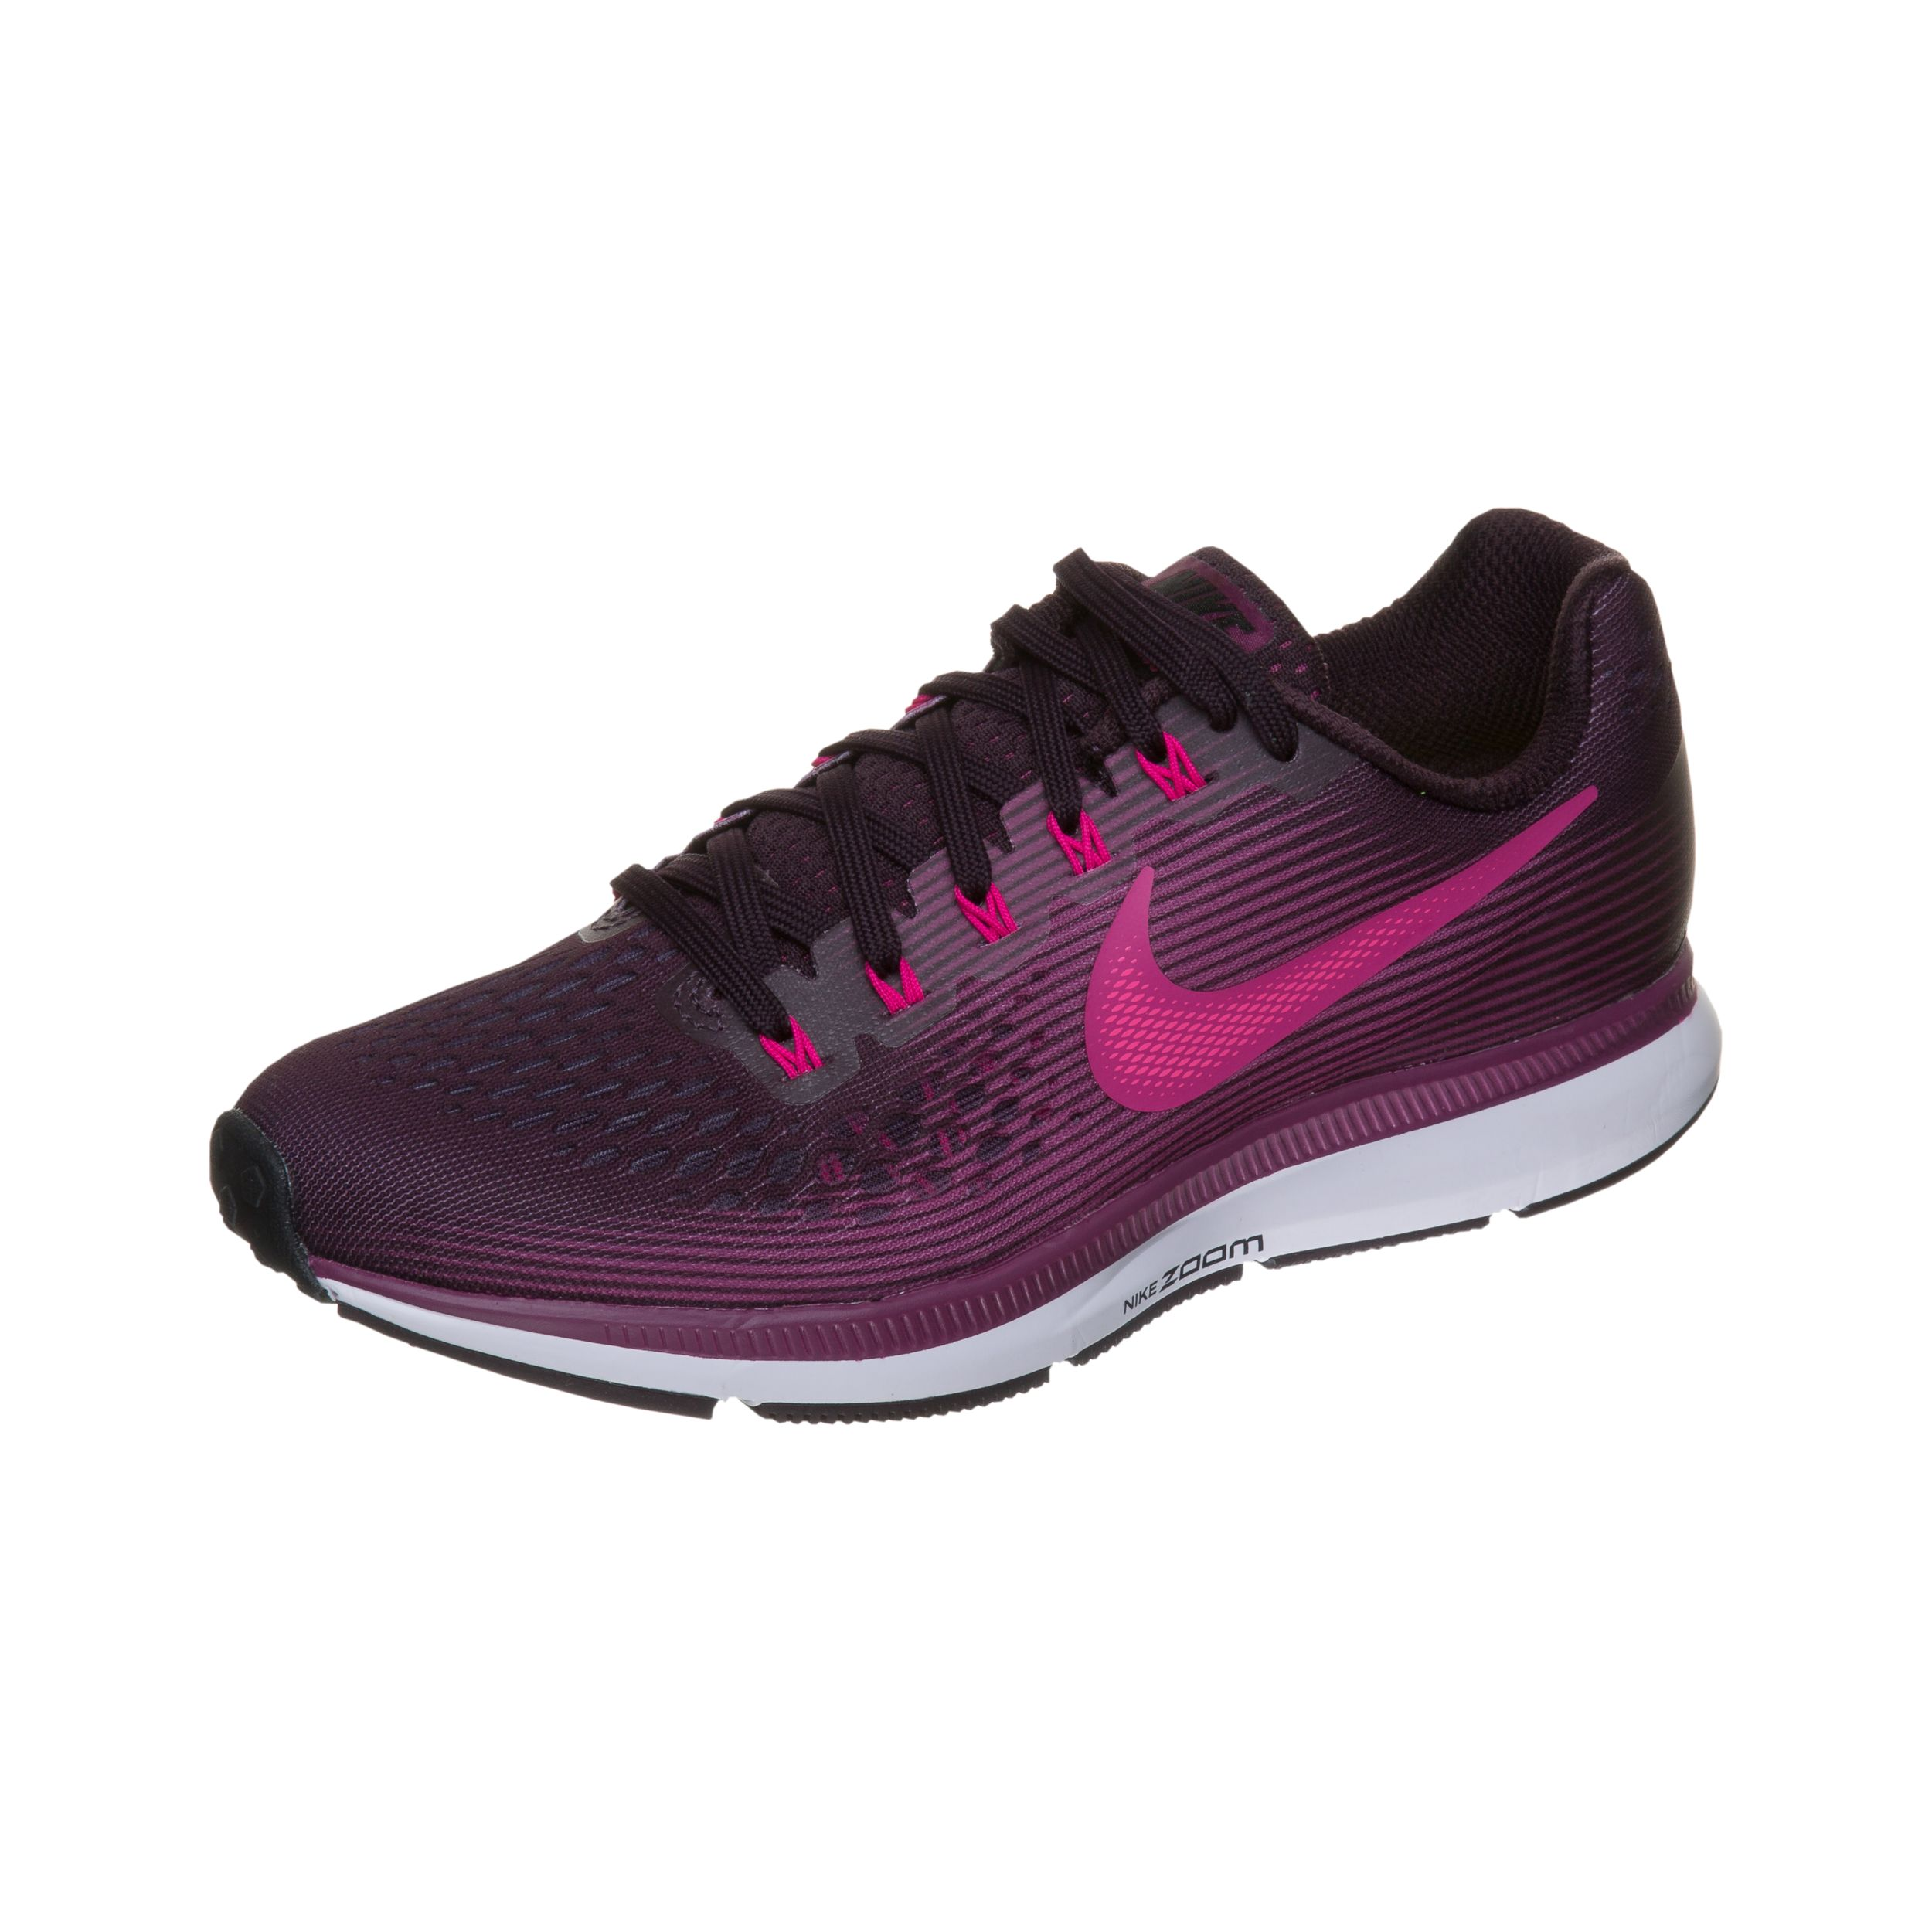 b36f1d755d ... Womens Running Shoe - The Next  Pure PlatinumCool GreyBlackAnthracite Nike  Air Zoom Pegasus 34 880560-  Sofort lieferbar. Lieferzeit 1 - 3 Tage ...